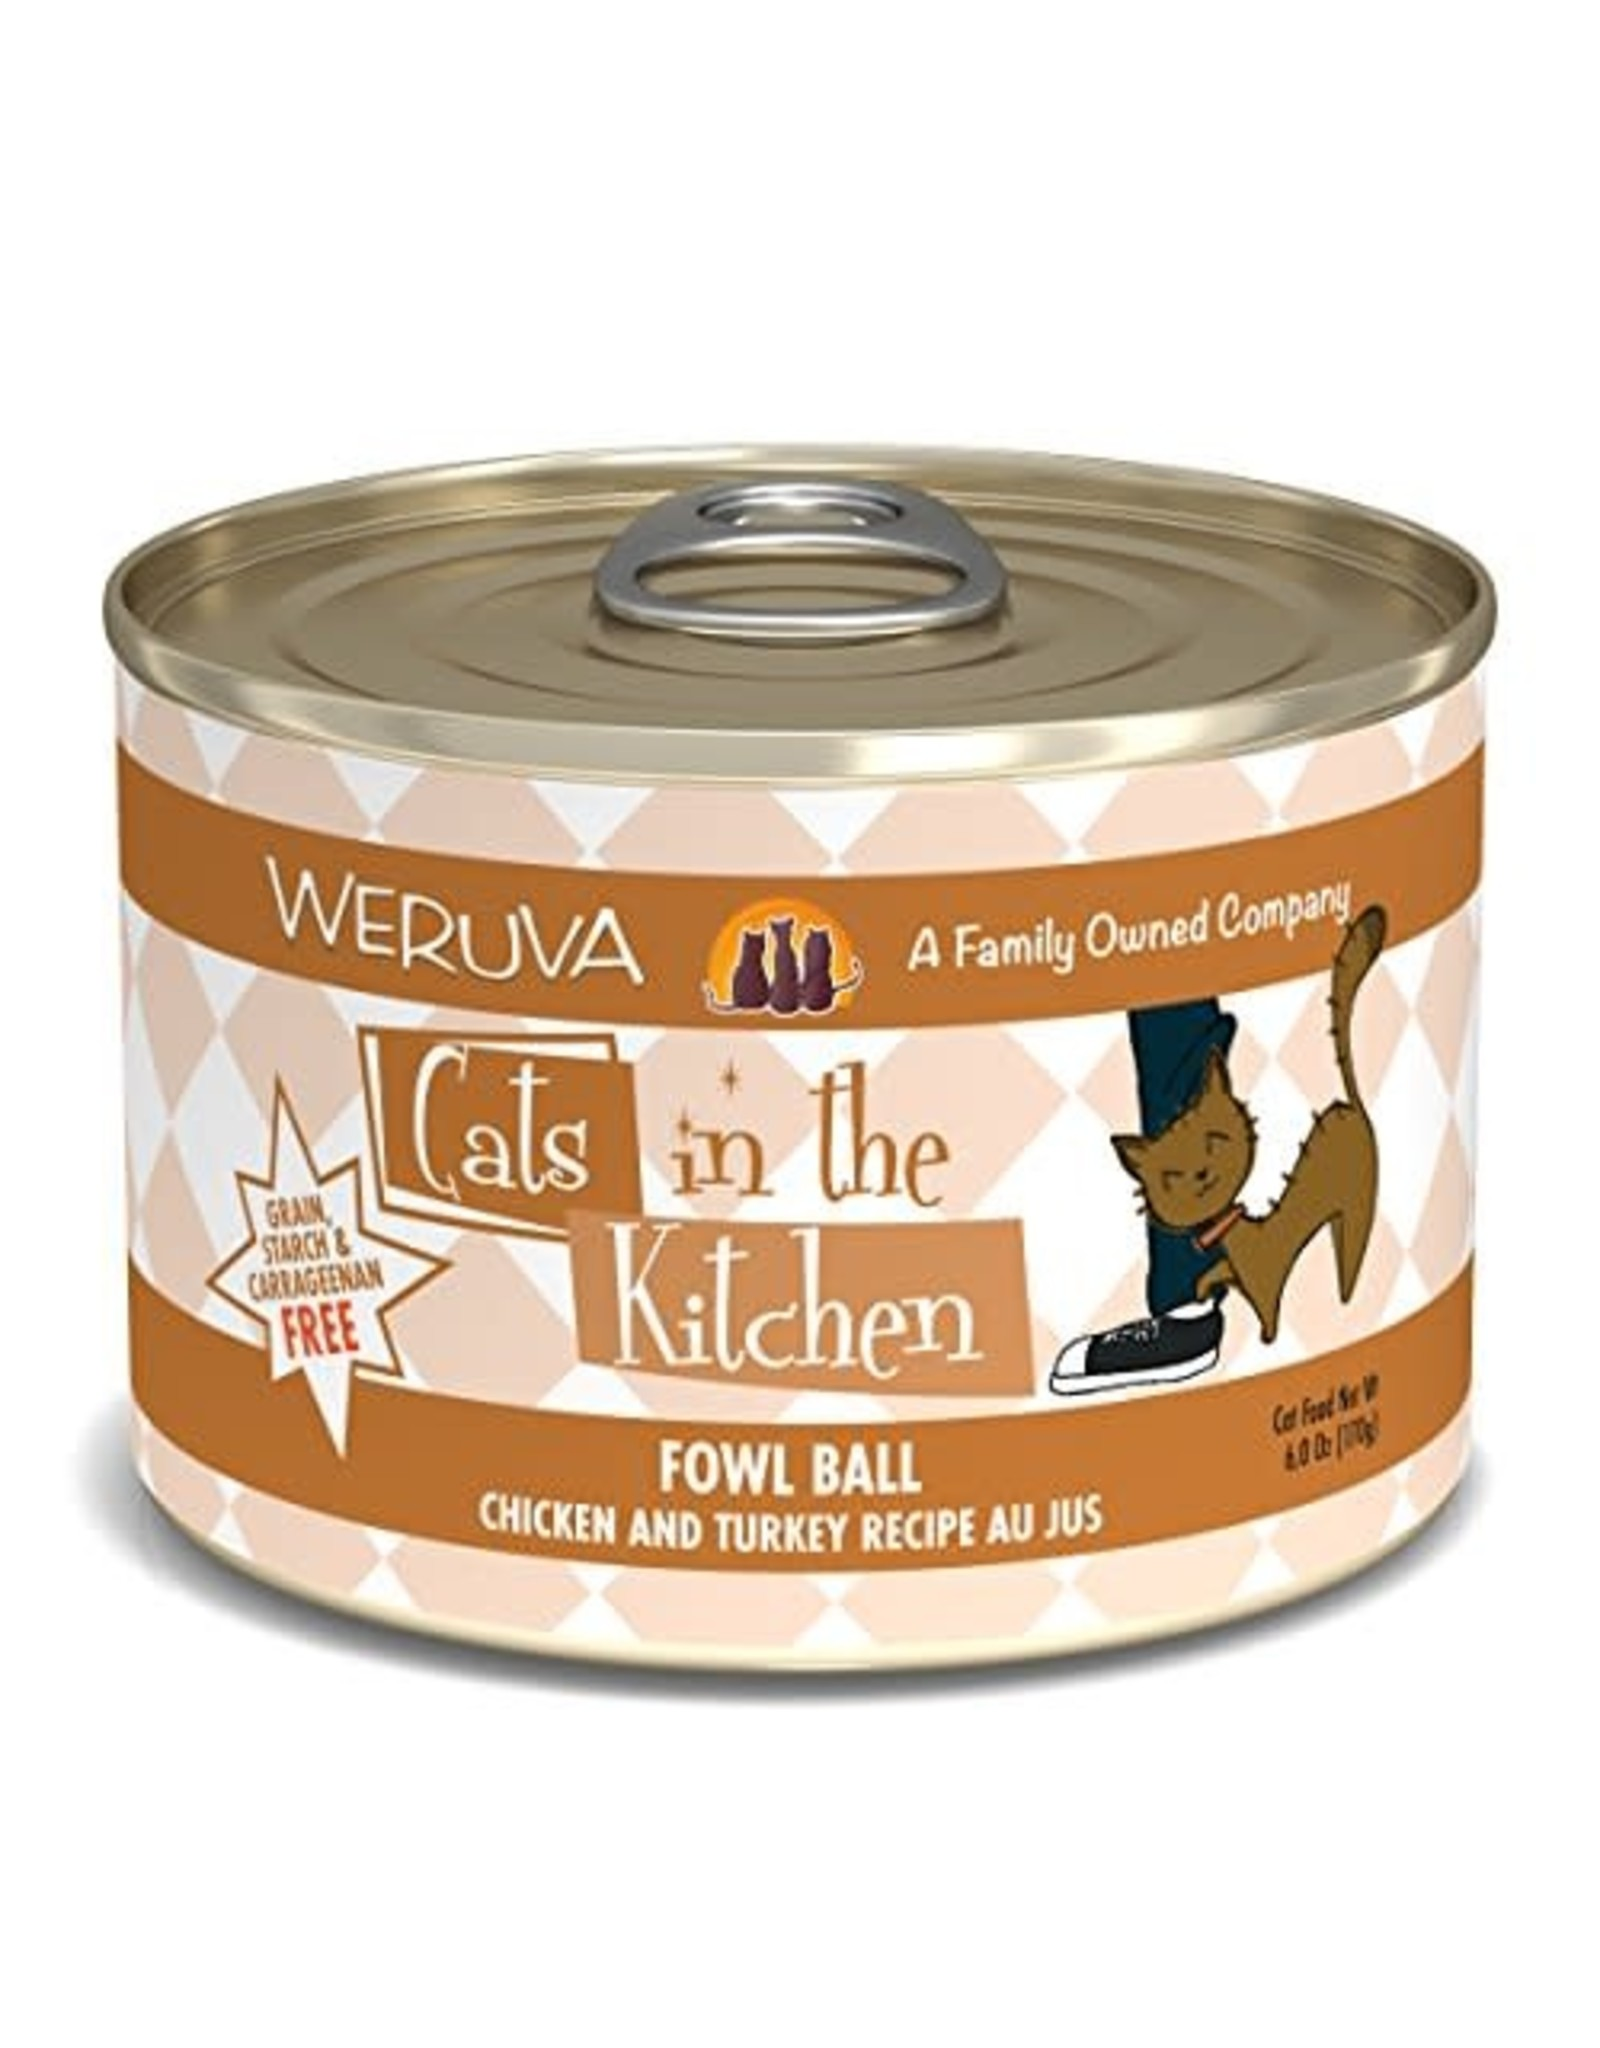 Weruva CITK Fowl Ball 6oz